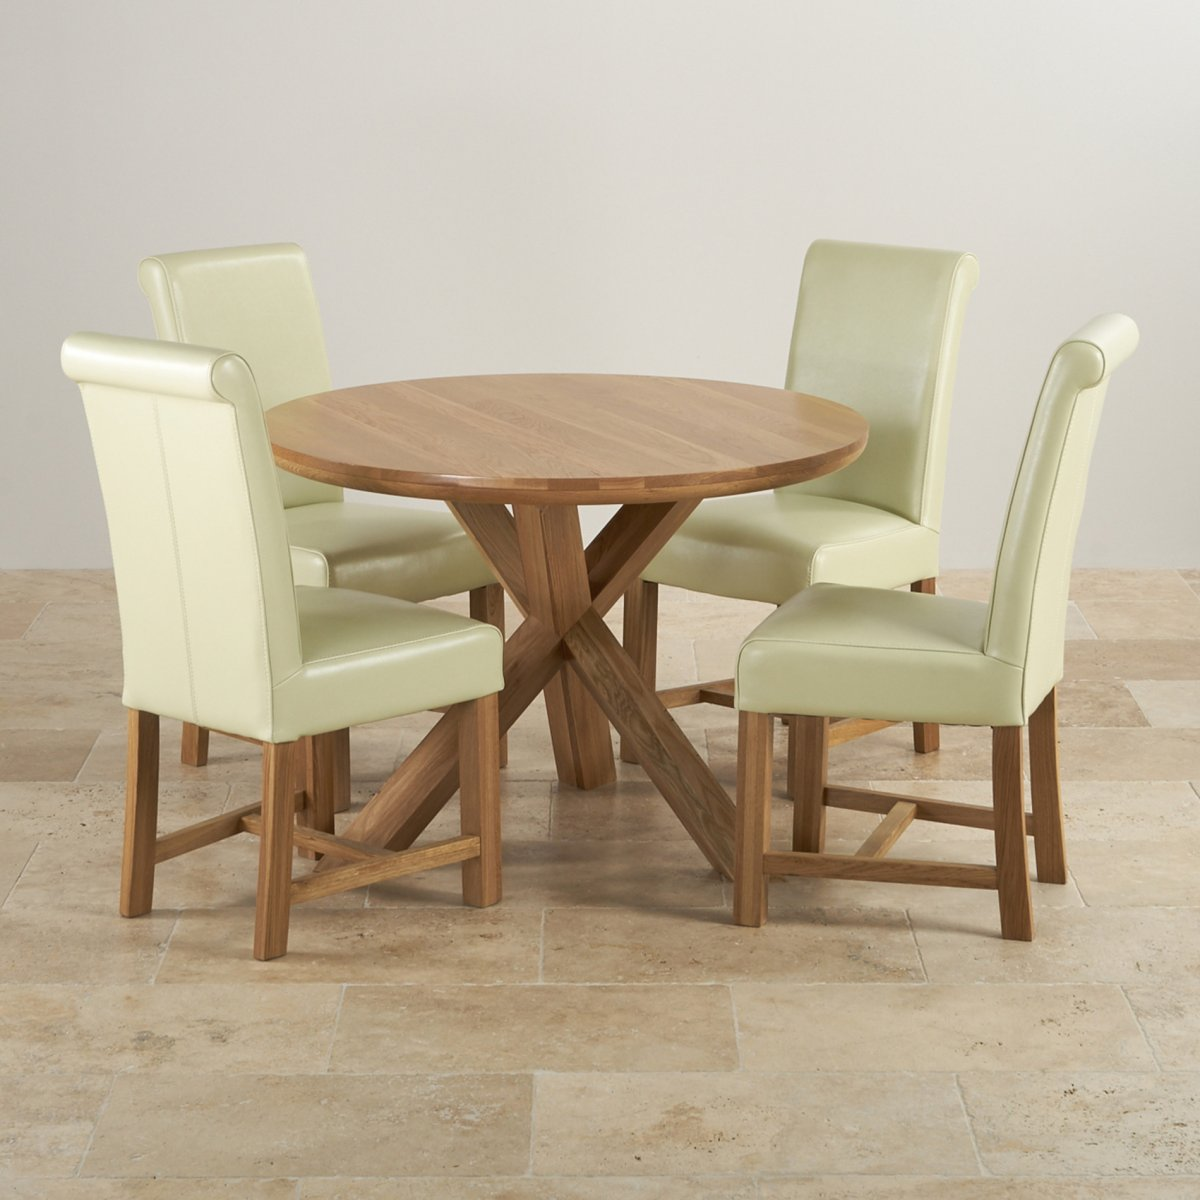 Natural oak round dining set table 4 cream leather chairs for Round dining table set for 4